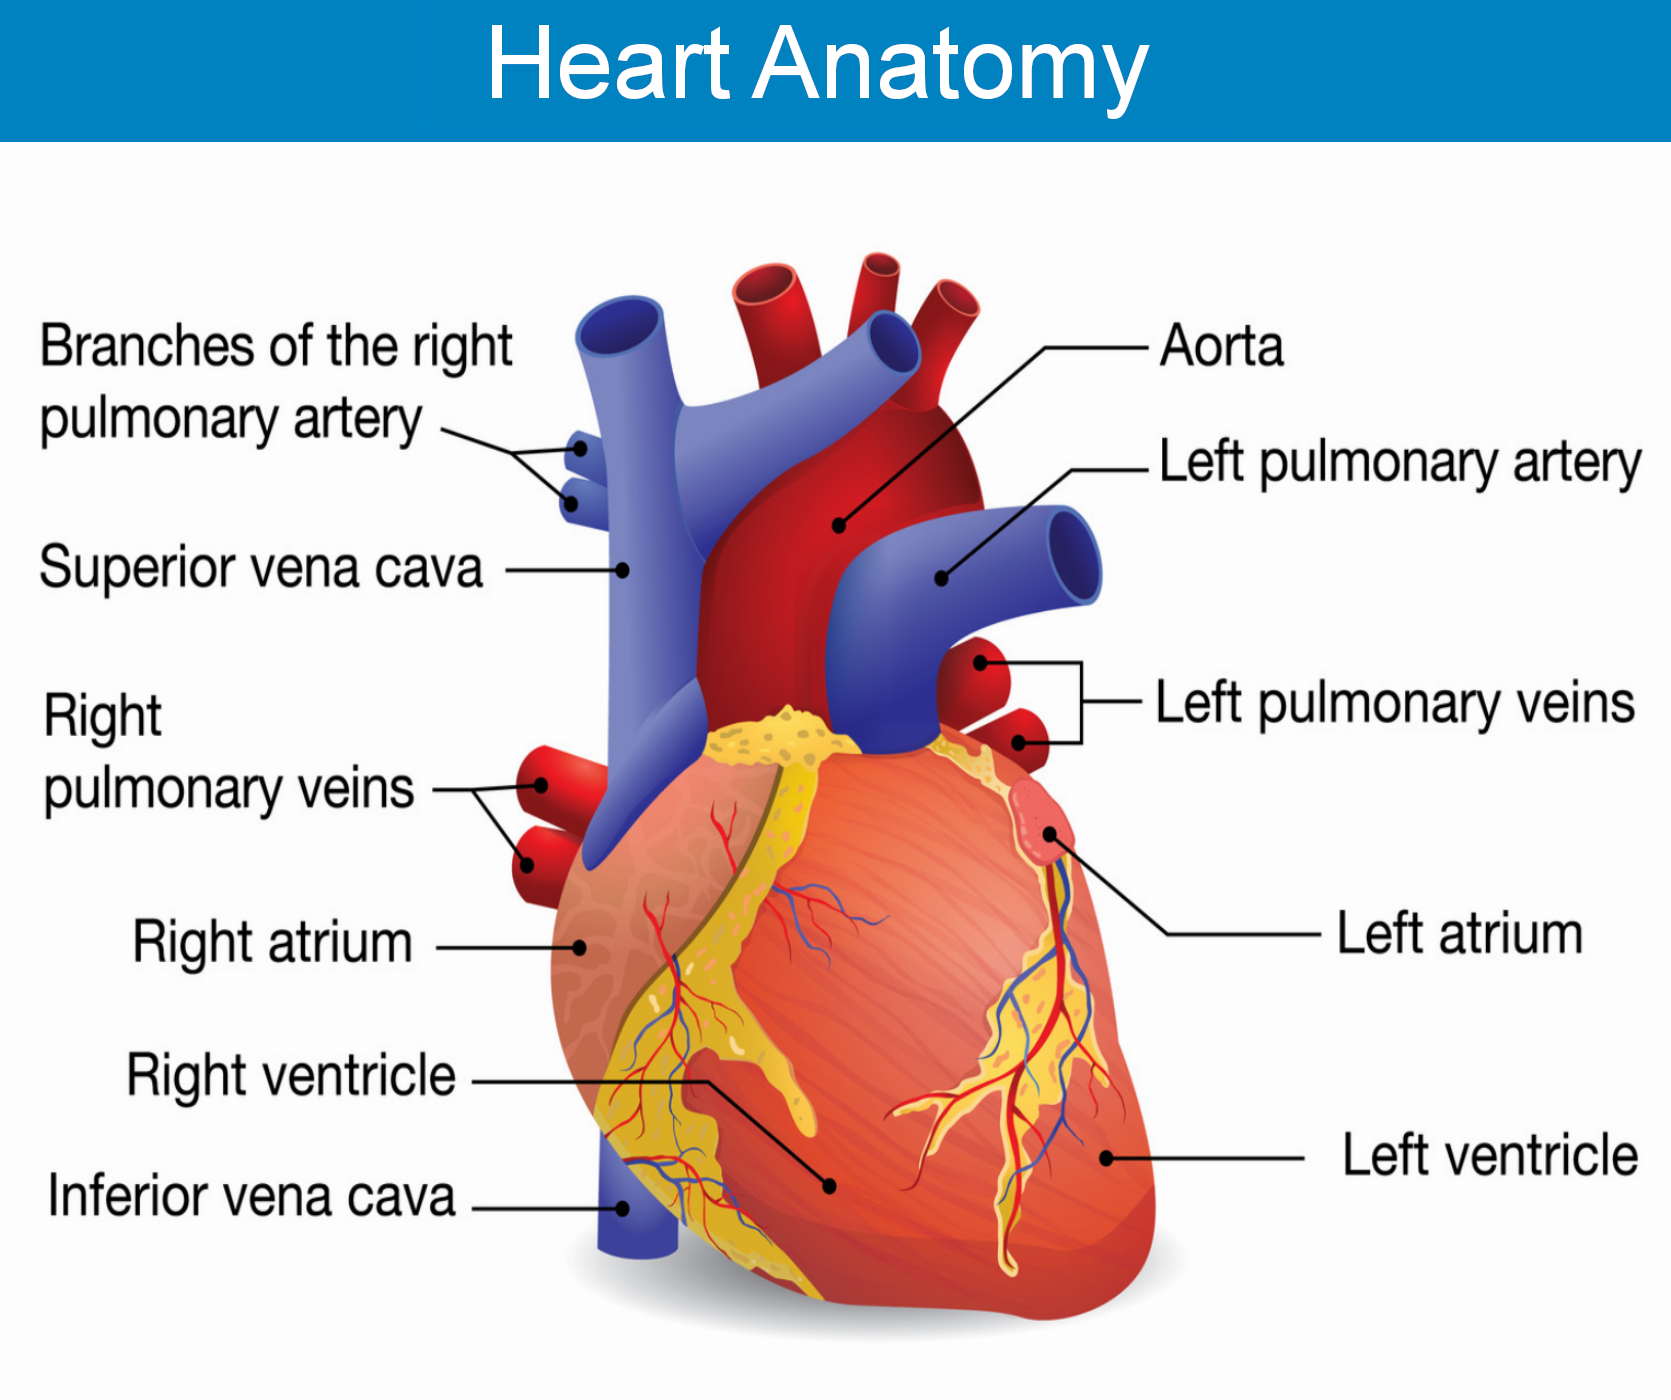 Cardiac Arrest, Human Heart Anatomy, cardiac arrest warning signs, cardiac arrest help, cardiac arrest first aid